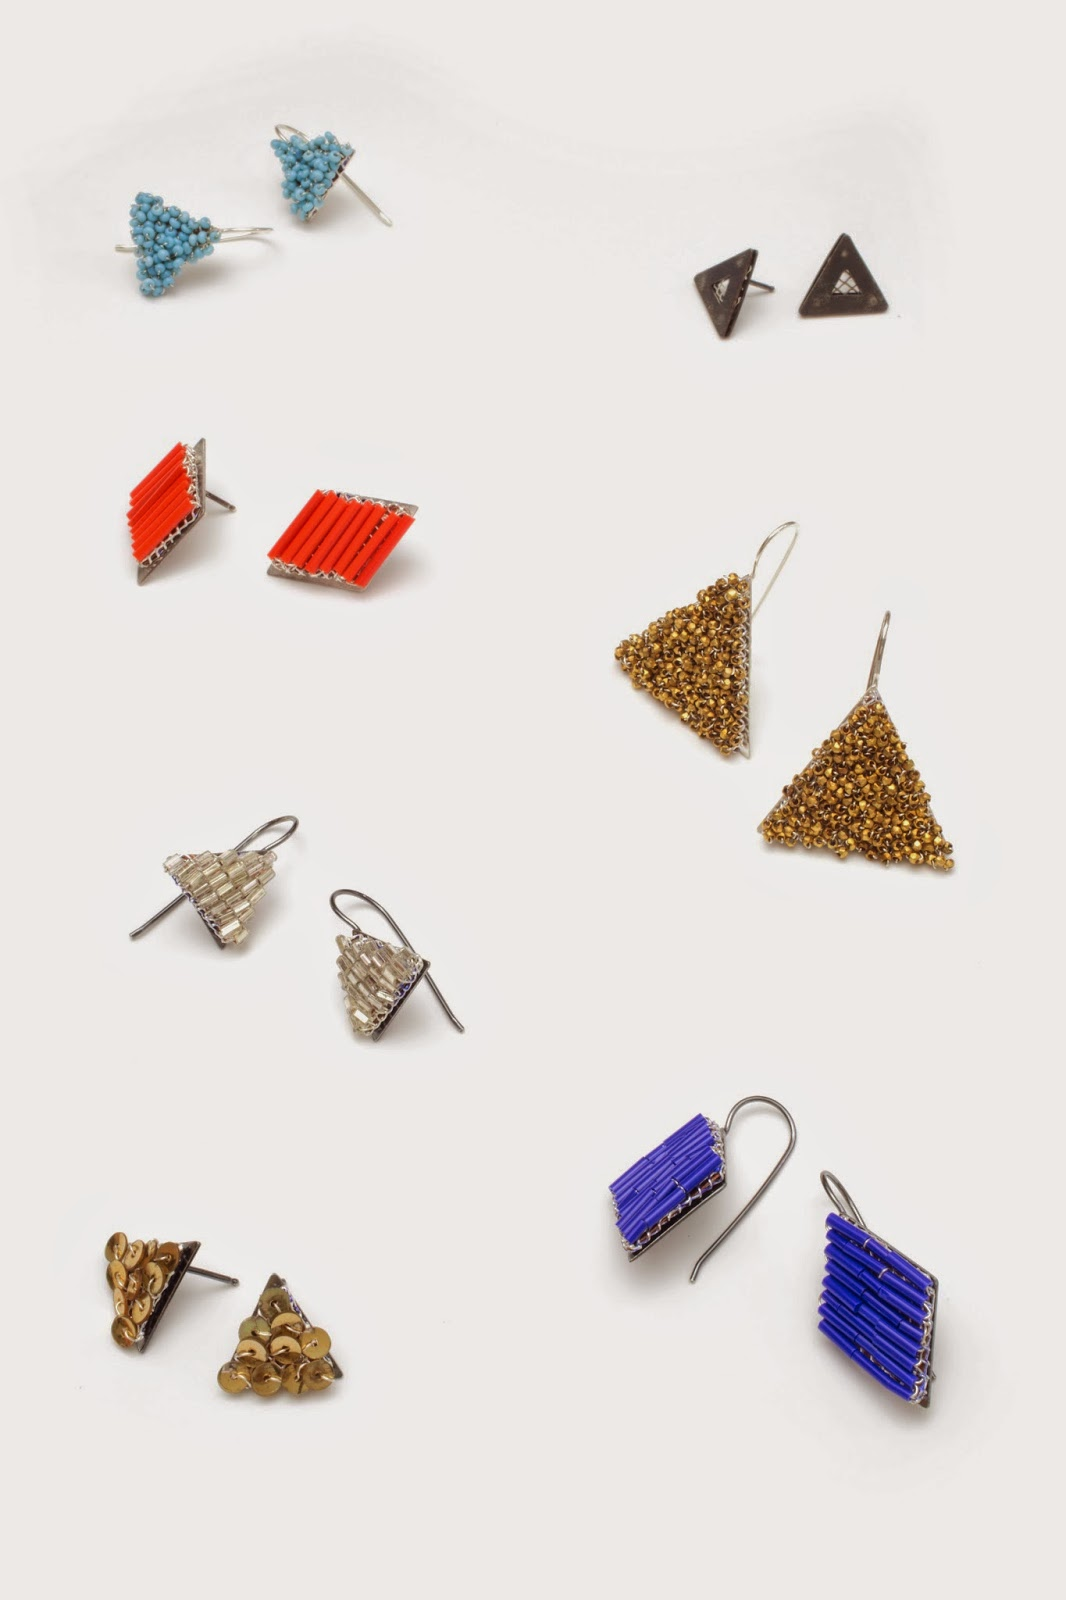 Miscellaneous earrings; photo by tiny jeweler photography